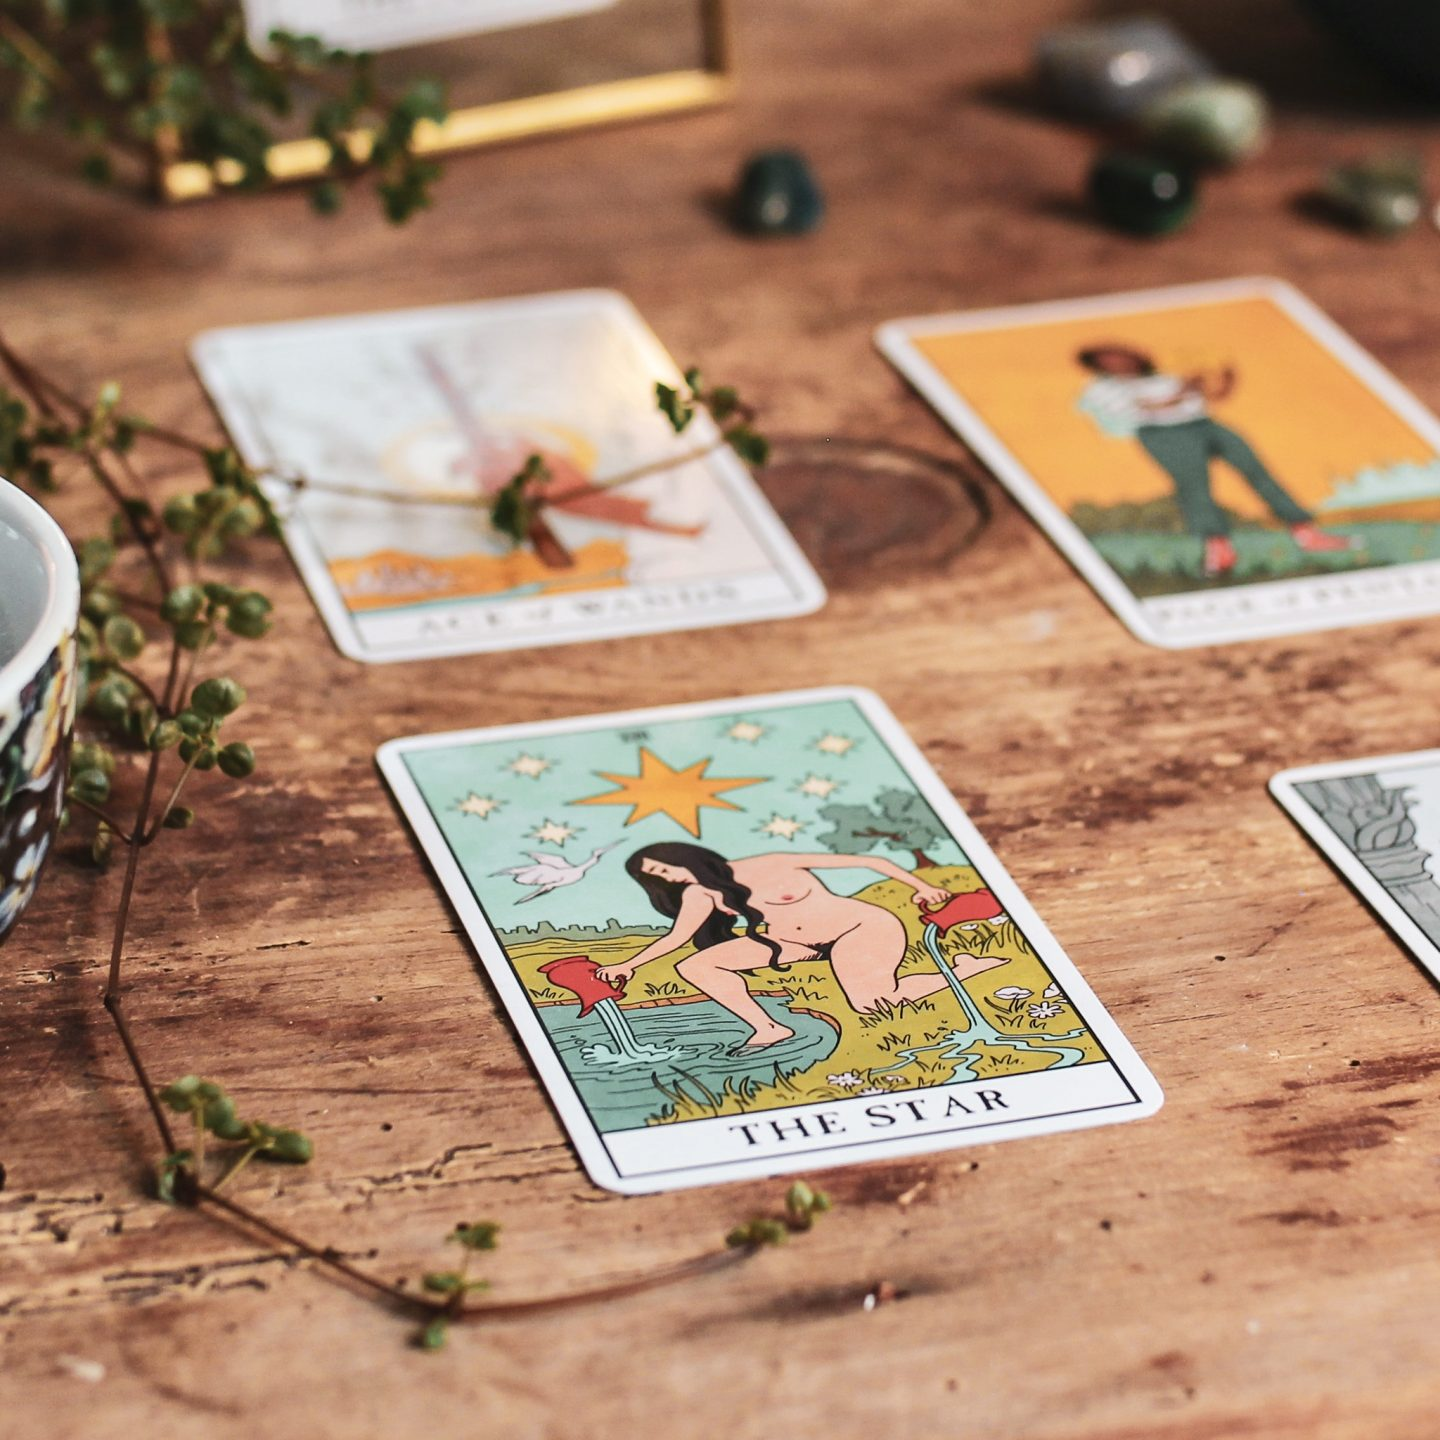 Image:  Lisa Strele's Modern Witch Tarot Deck